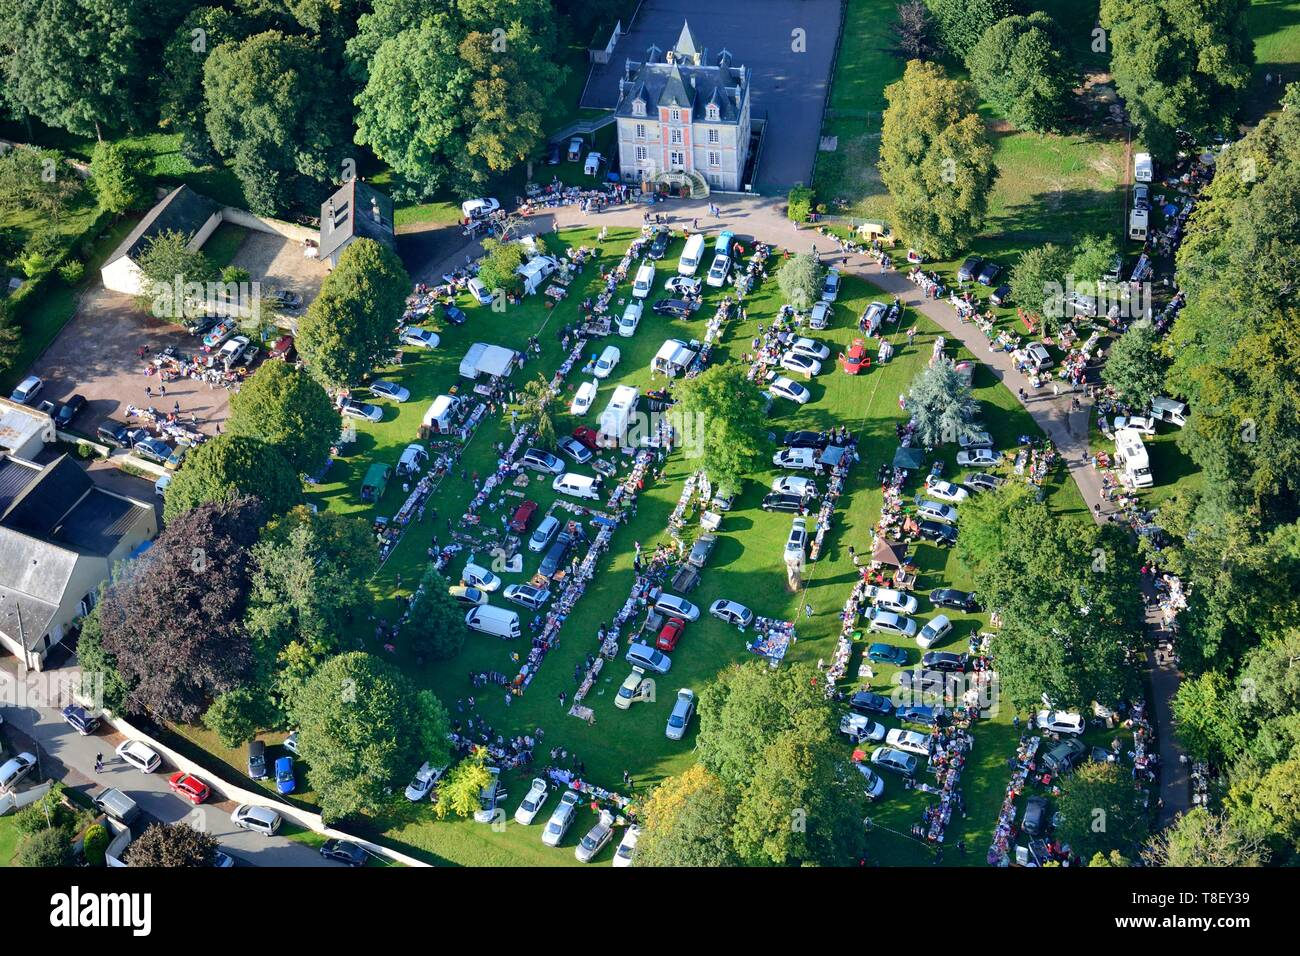 France, Calvados, Ryes, flea market in the castle park (aerial view) - Stock Image